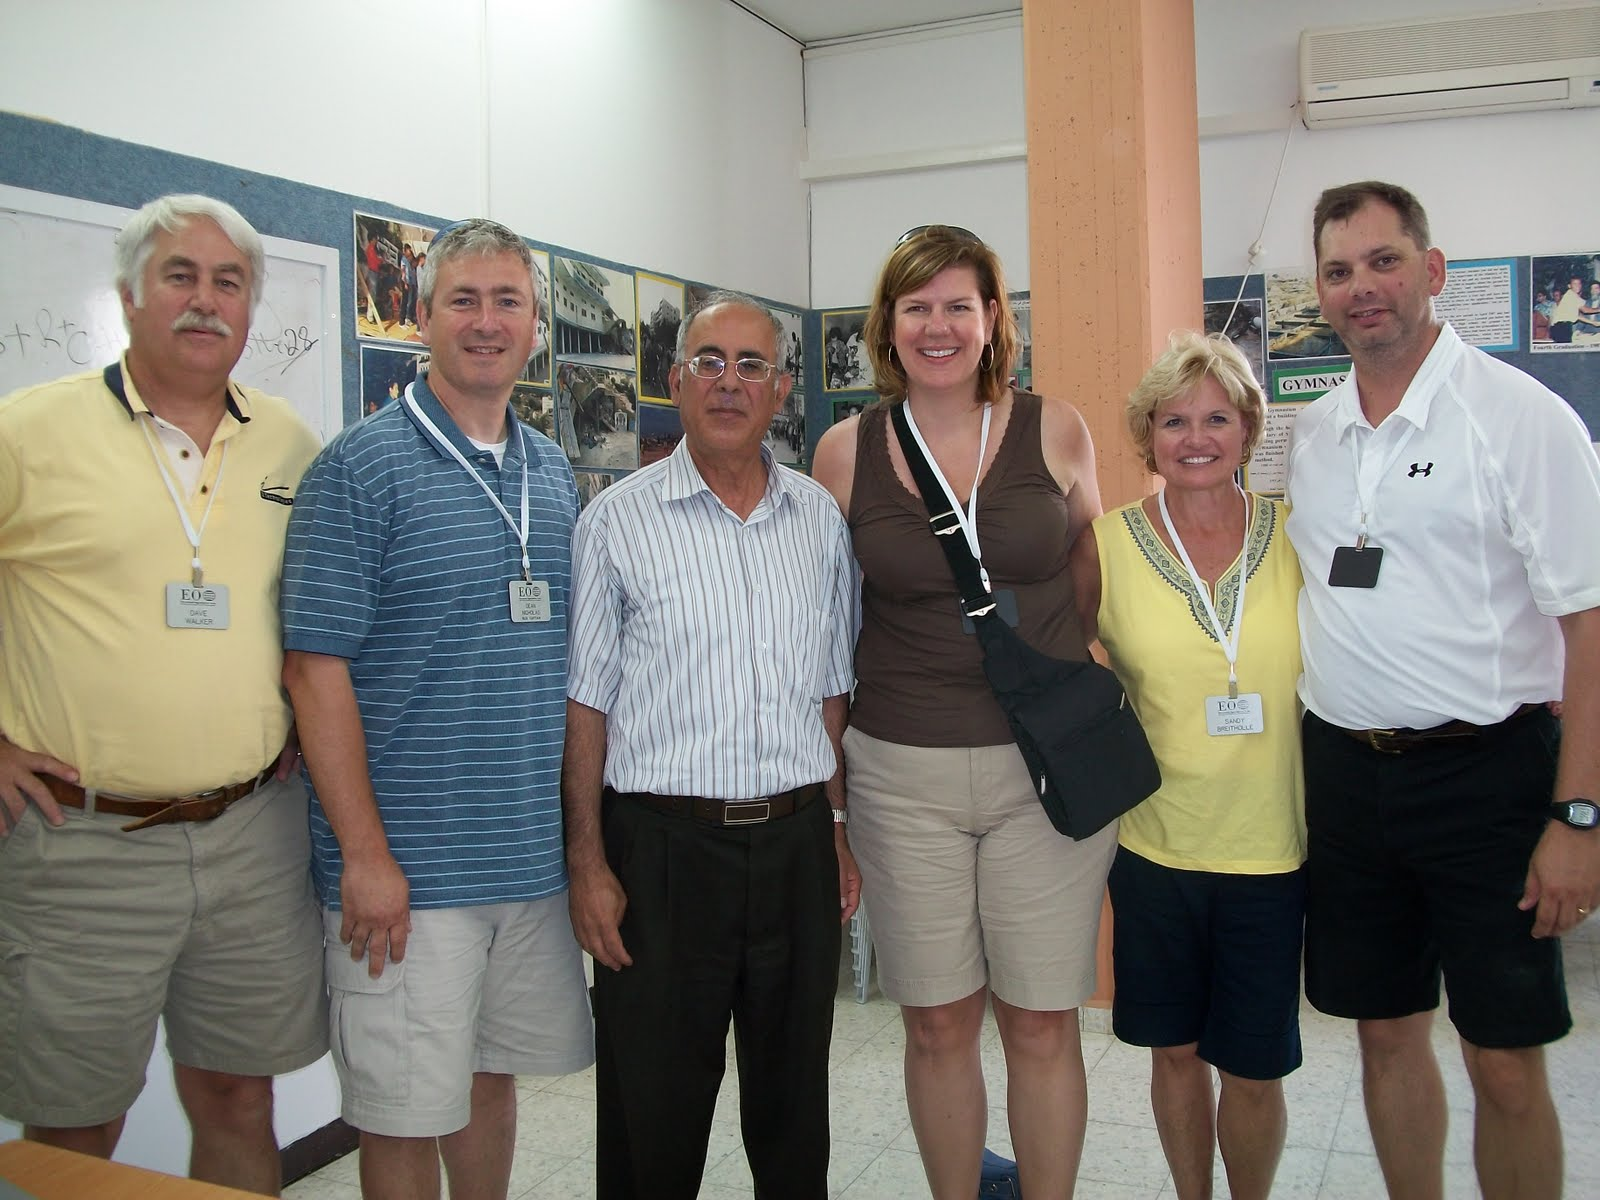 CHCA Administrators at Mar Elias High School, Ibillin, Israel